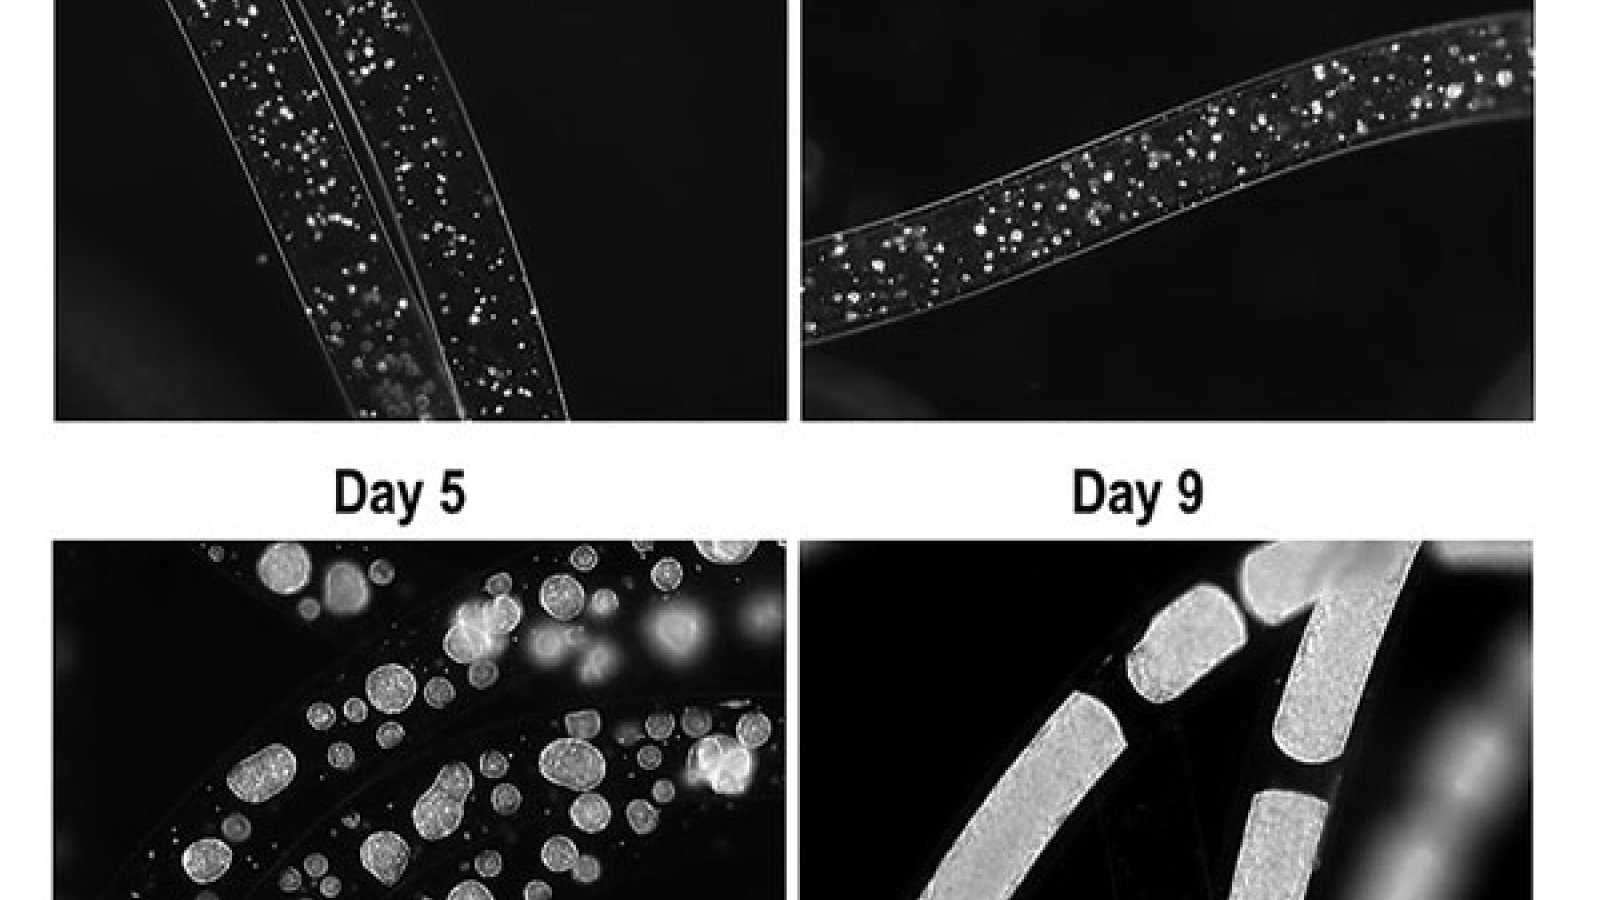 Growing human embryonic stem cells in hydrogel tubes protects them from moving media and promotes health and higher yields.